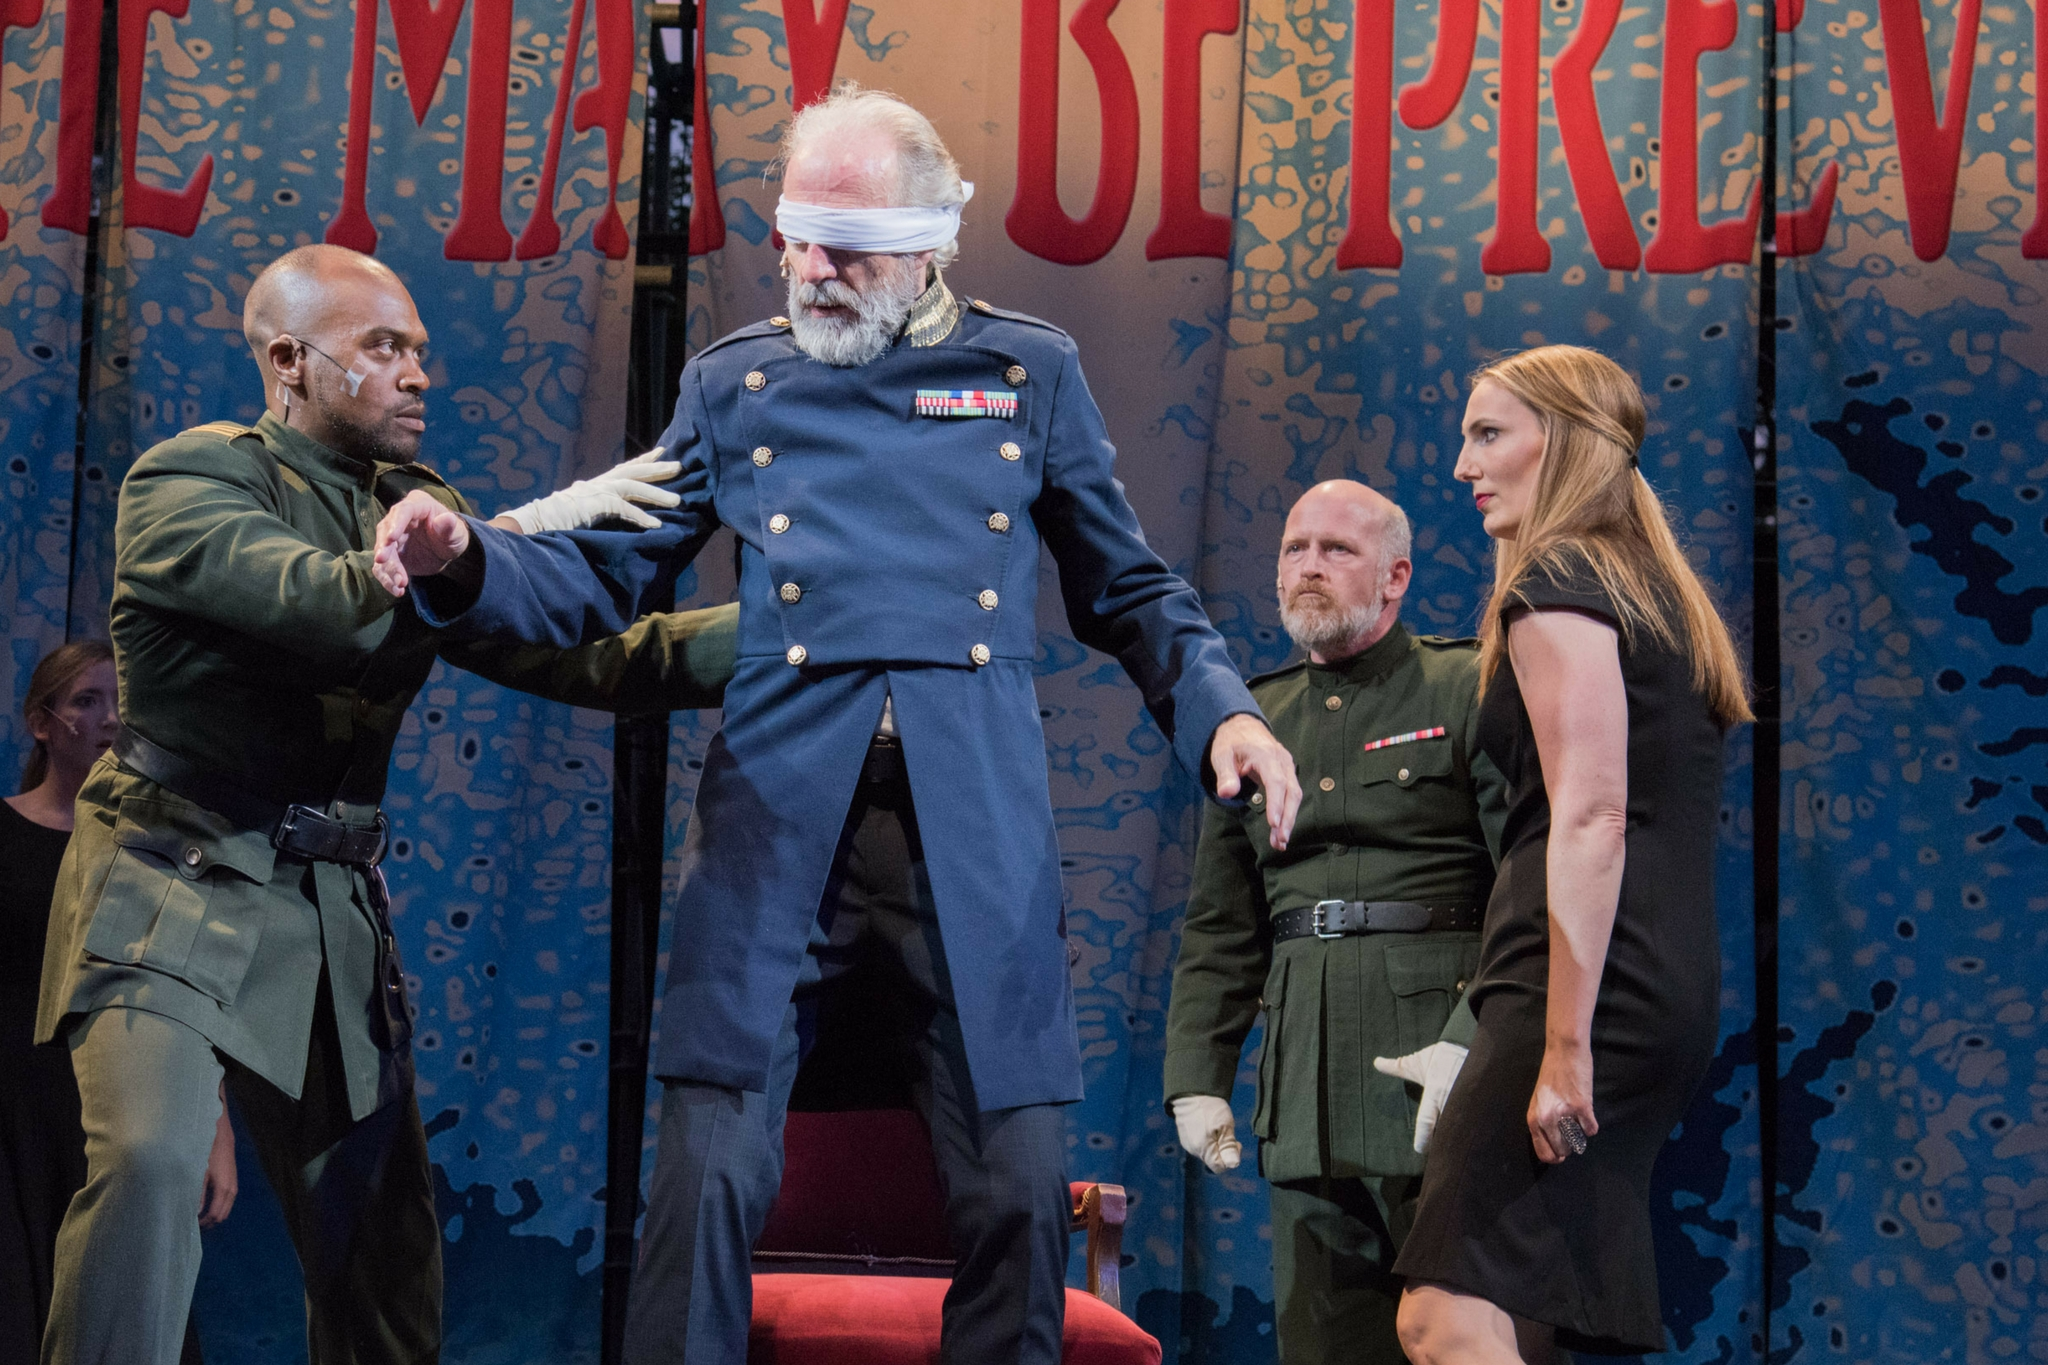 Maurice Emmanuel Parent (Duke of Cornwall), Will Lyman (King Lear), Mark Soucy (Due of Albany), and Deb Martin (Goneril) in King Lear, Shakespeare on the Common 2015-Photo by Andrew Brilliant